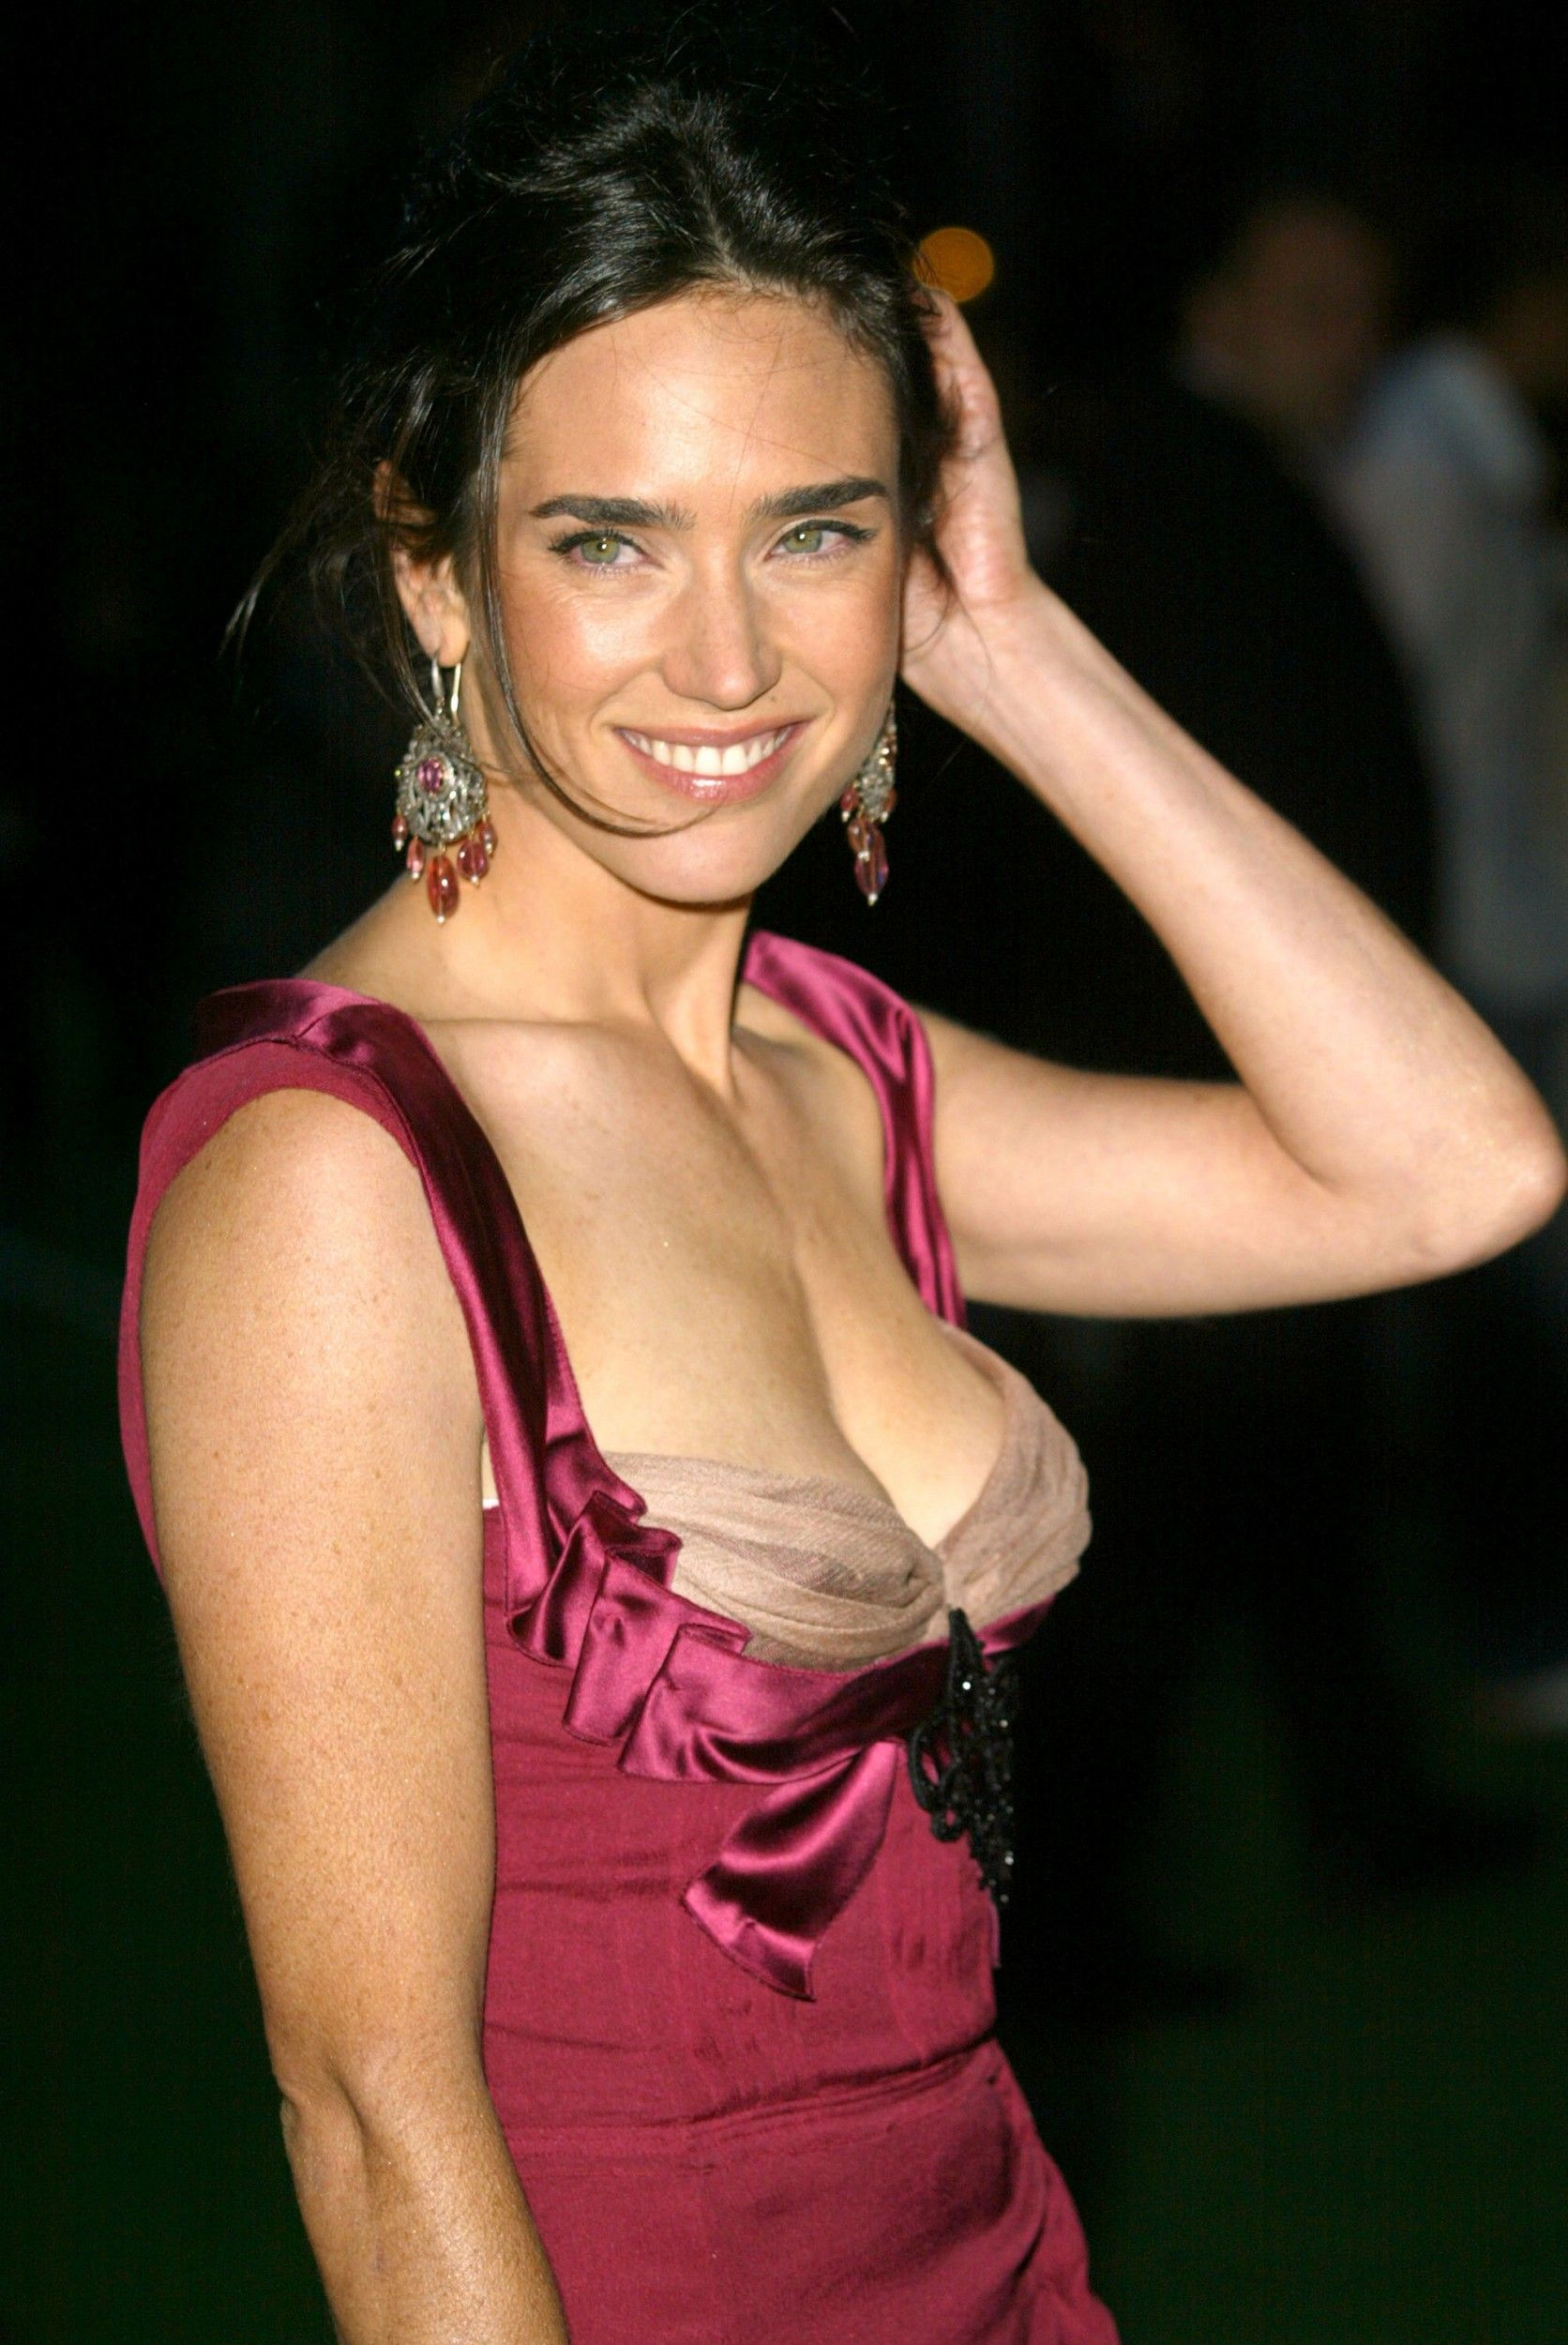 Jennifer connelly naked picture 3